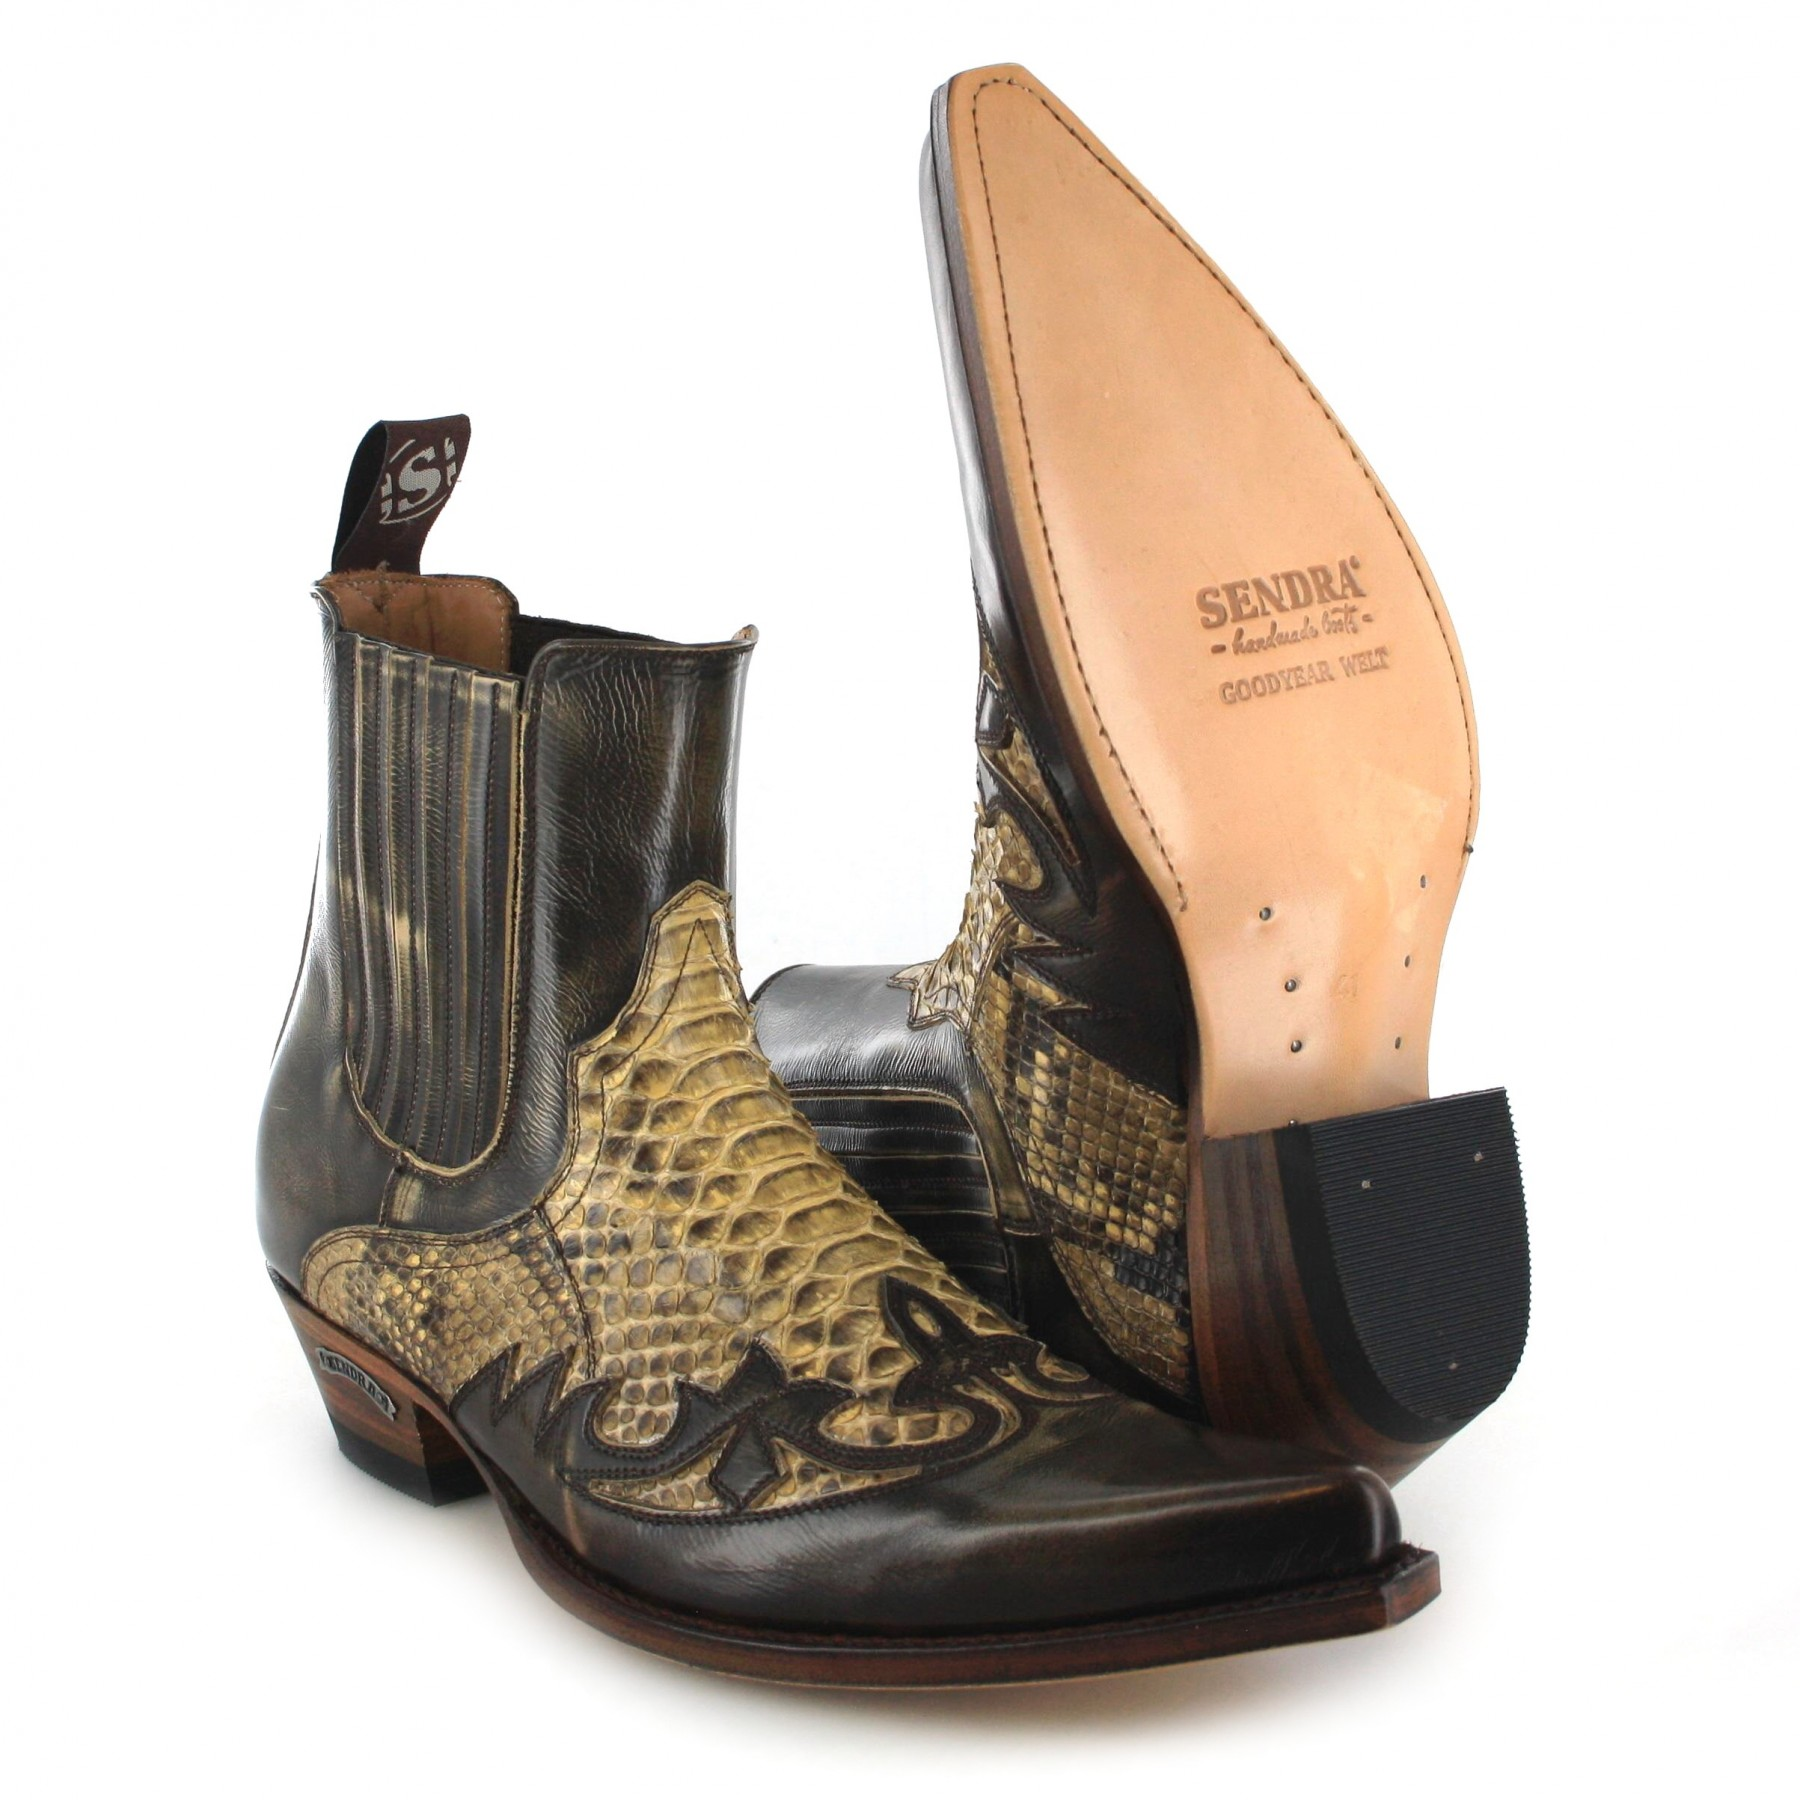 sendra boots 9396p denver 075 western ankle boot